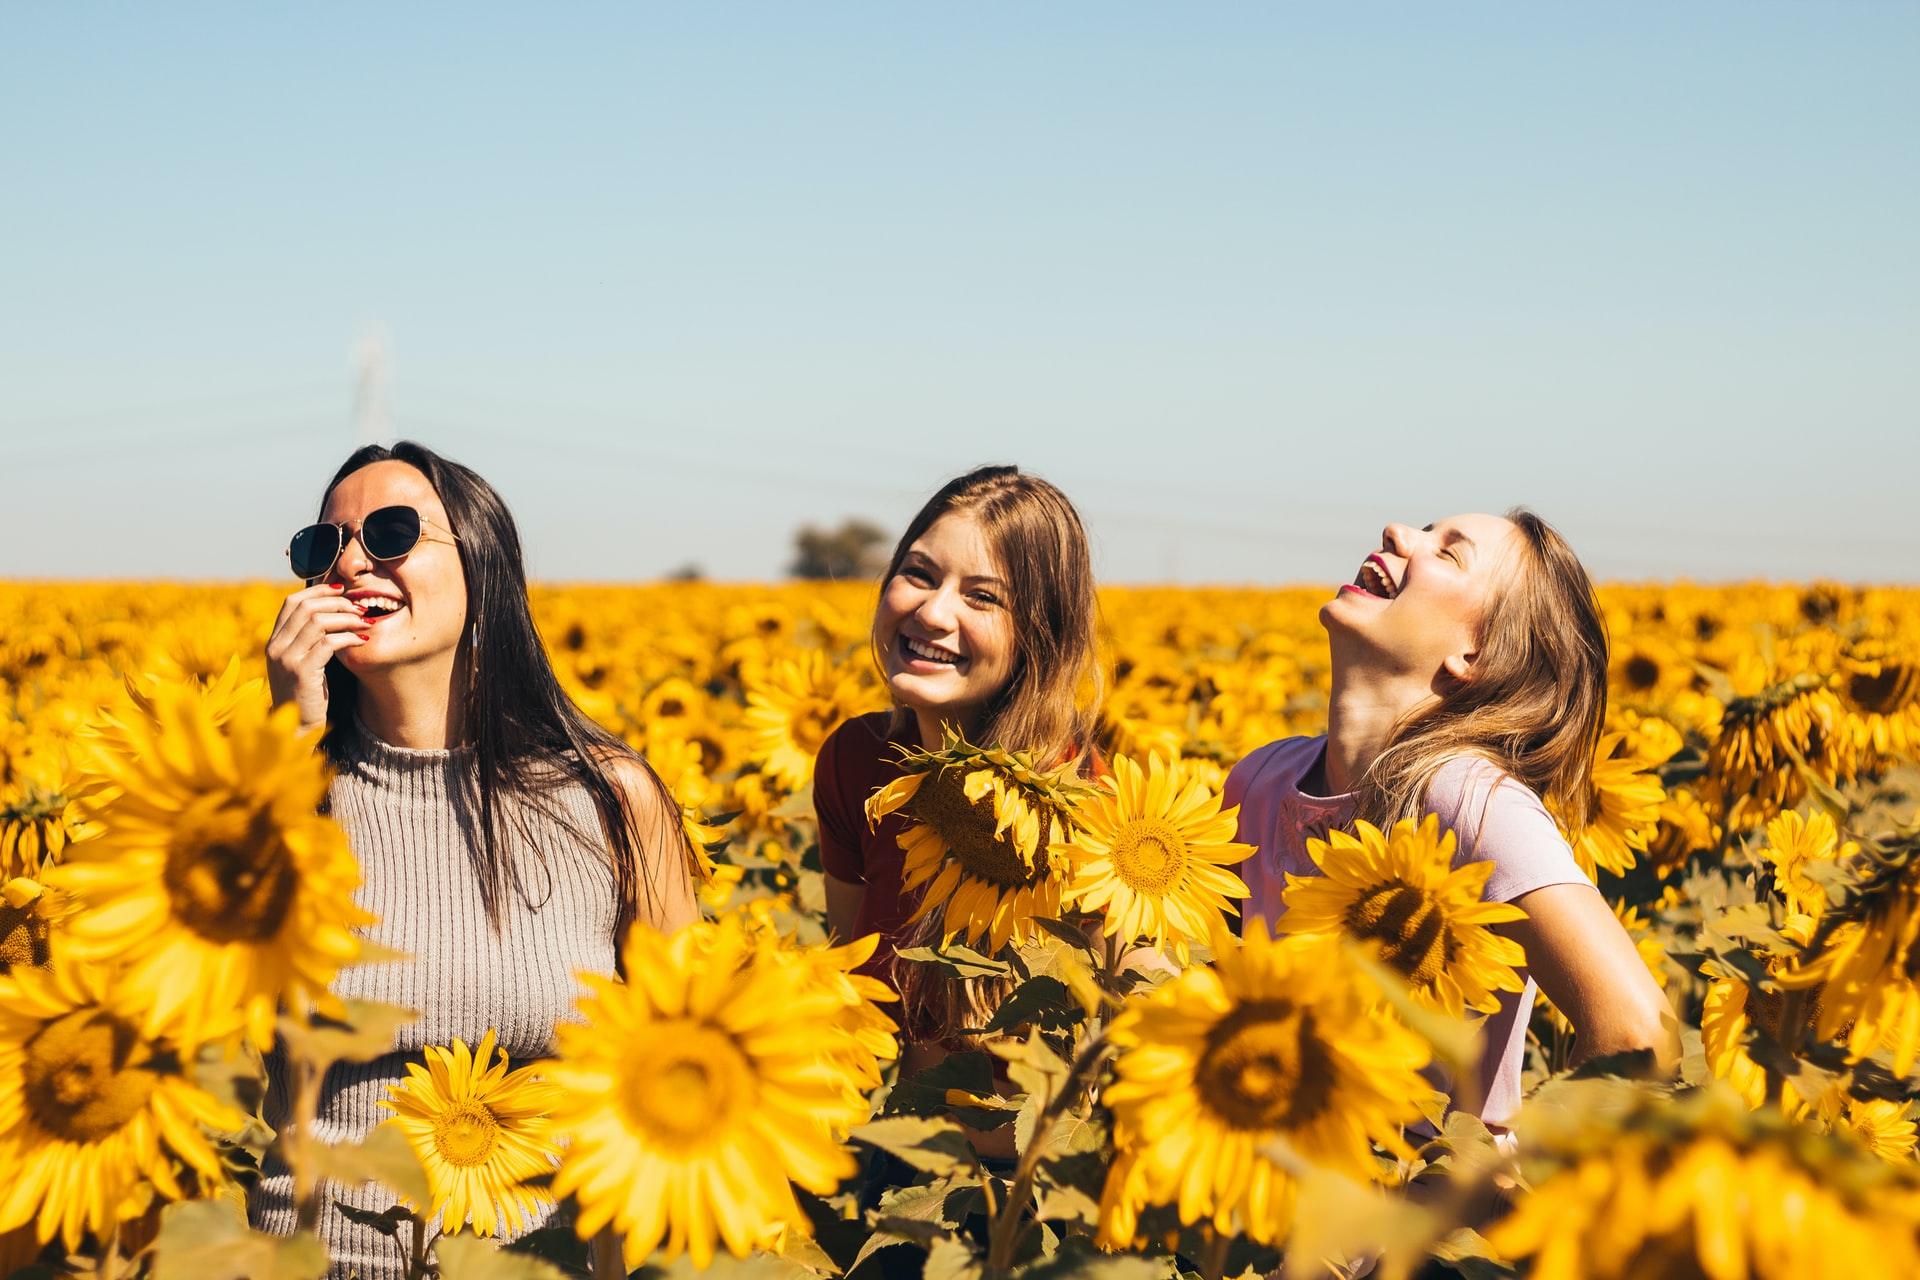 Three young ladies laughing in a field of sun flowers